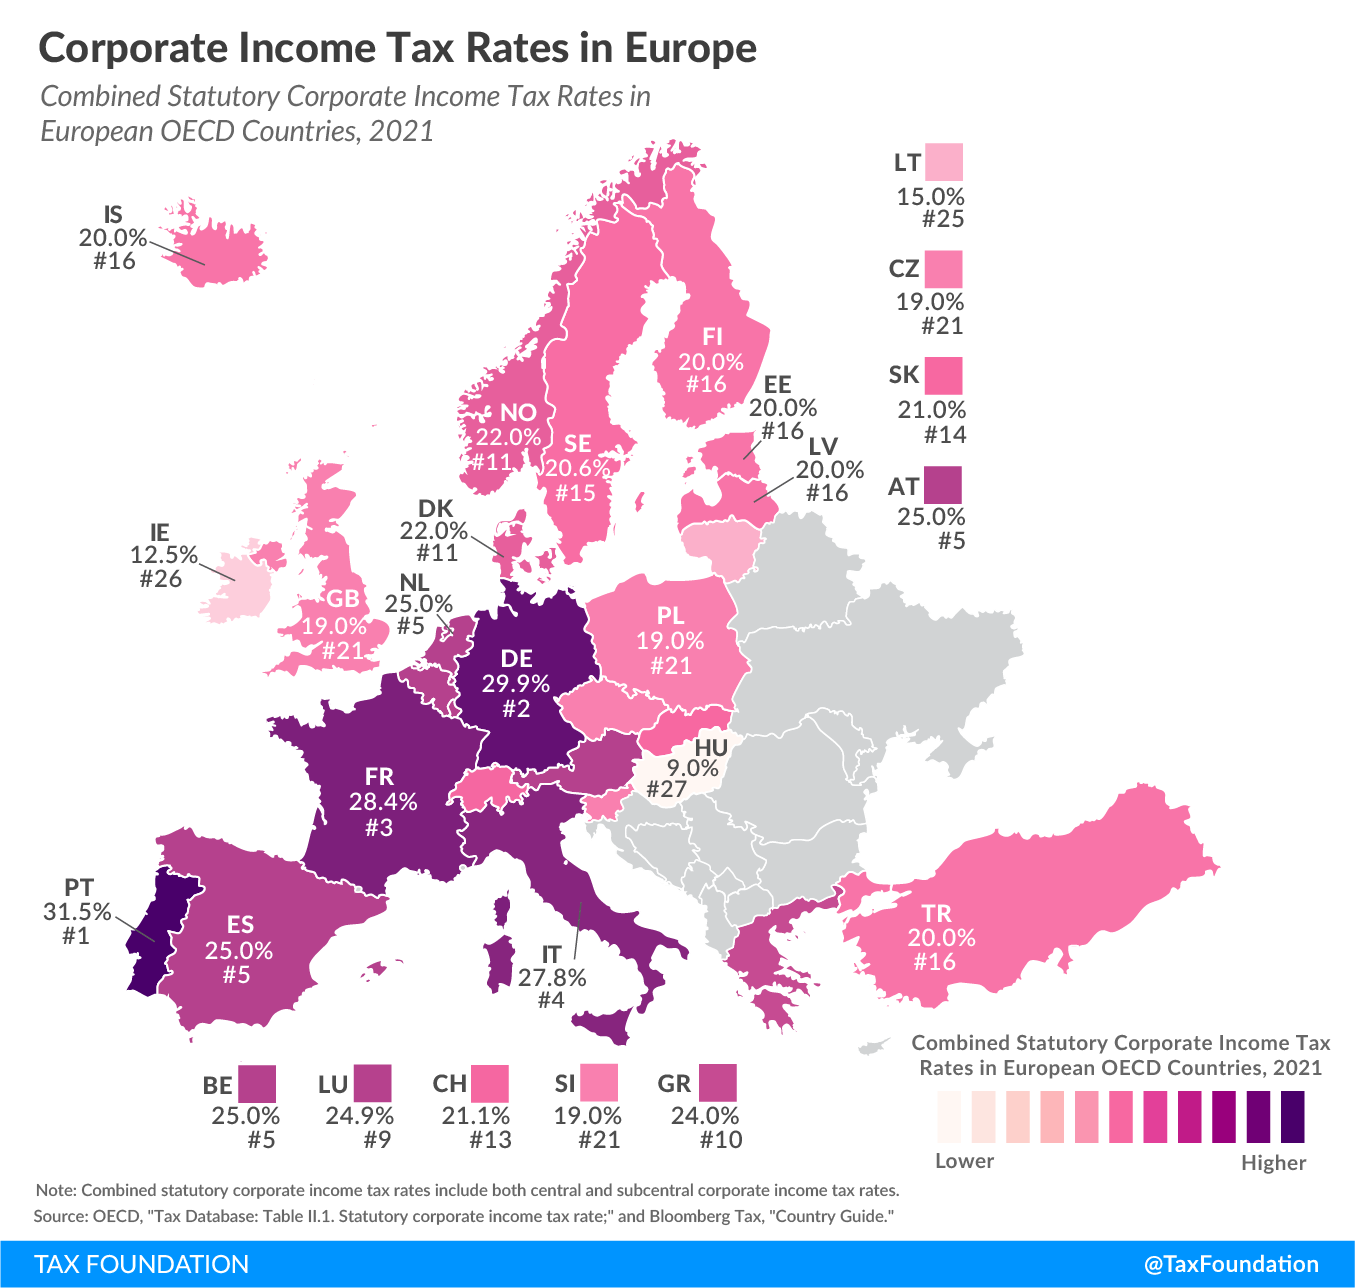 Corporate Income Tax Rates in Europe